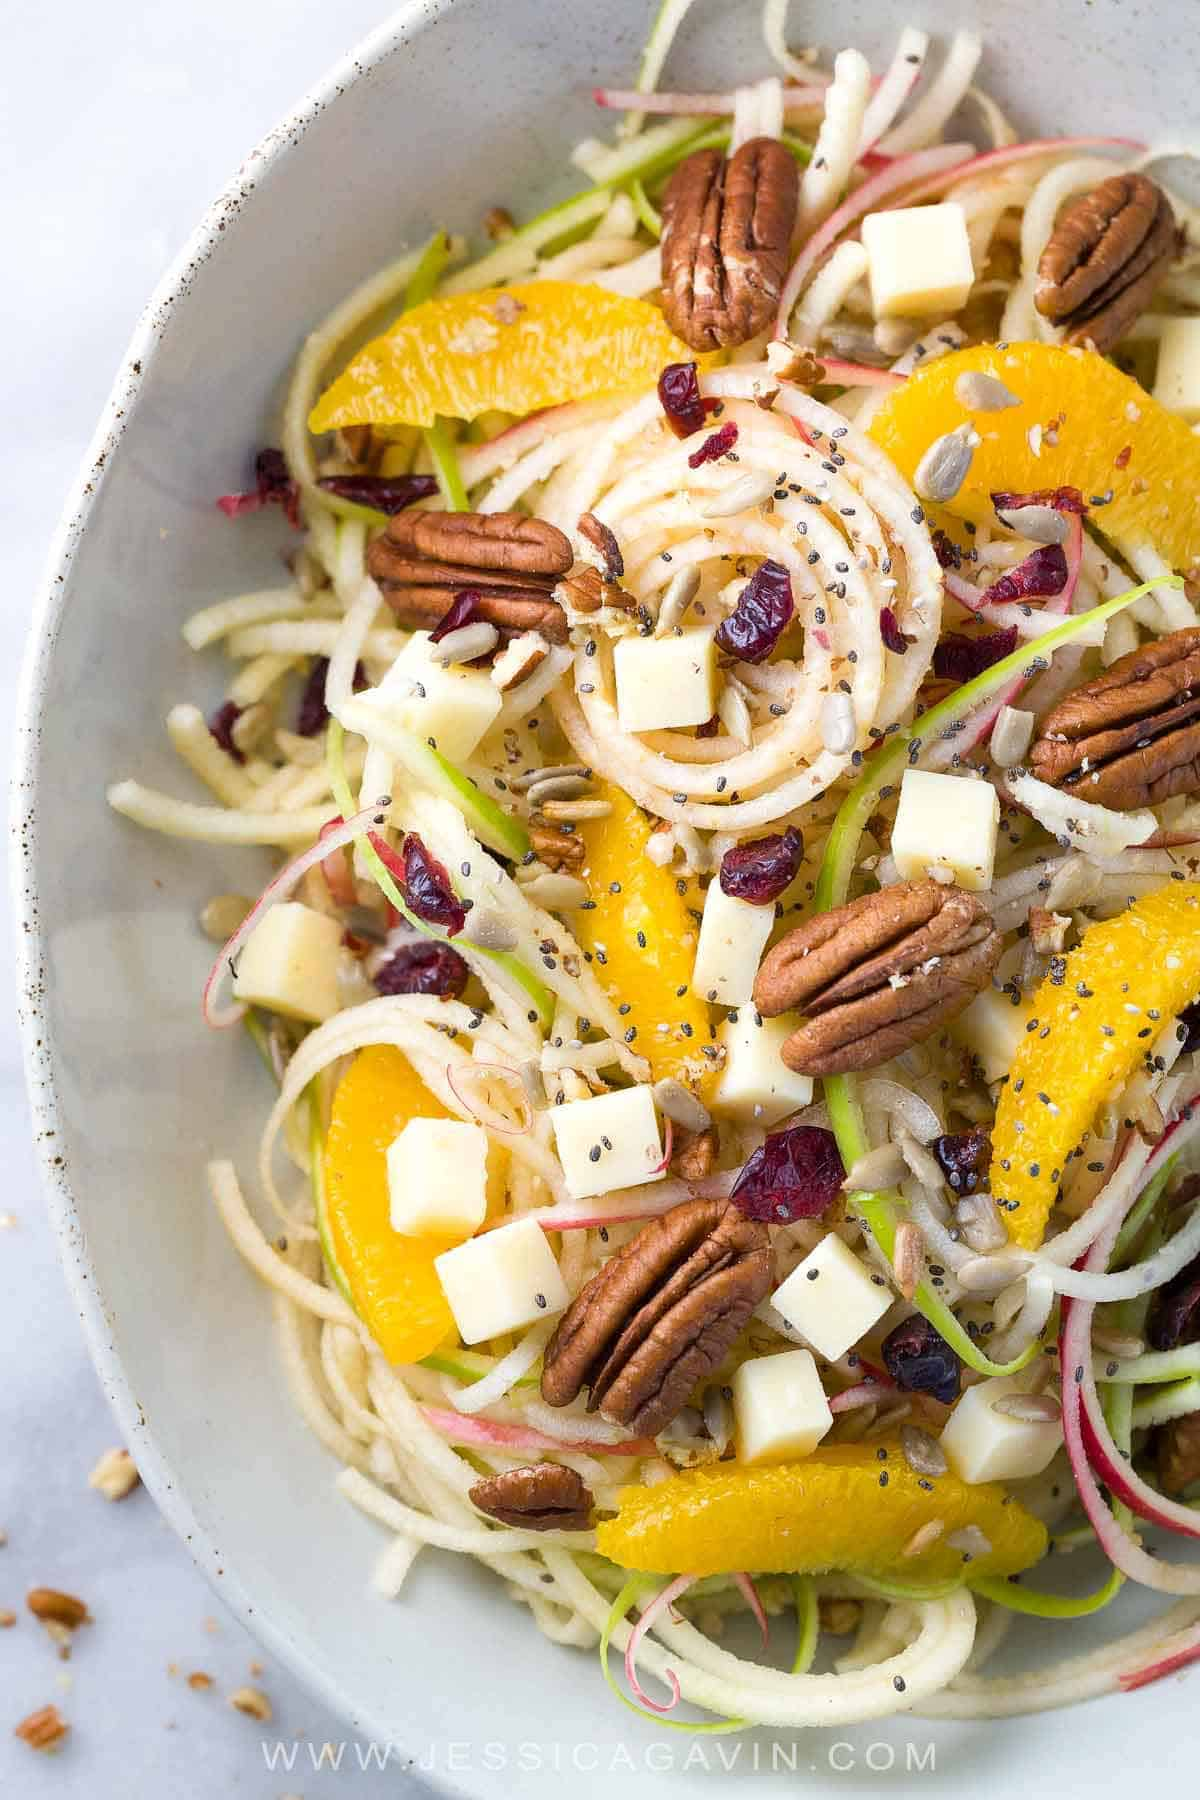 Spiralized Apple Salad with Citrus Dressing - Healthy and refreshing recipe made in only 15 minutes! Topped with oranges, pecans, cheddar cheese, cranberries, sunflower and chia seeds. #apples #salad #inspiralizer #spiralizedvegetables #healthyrecipes